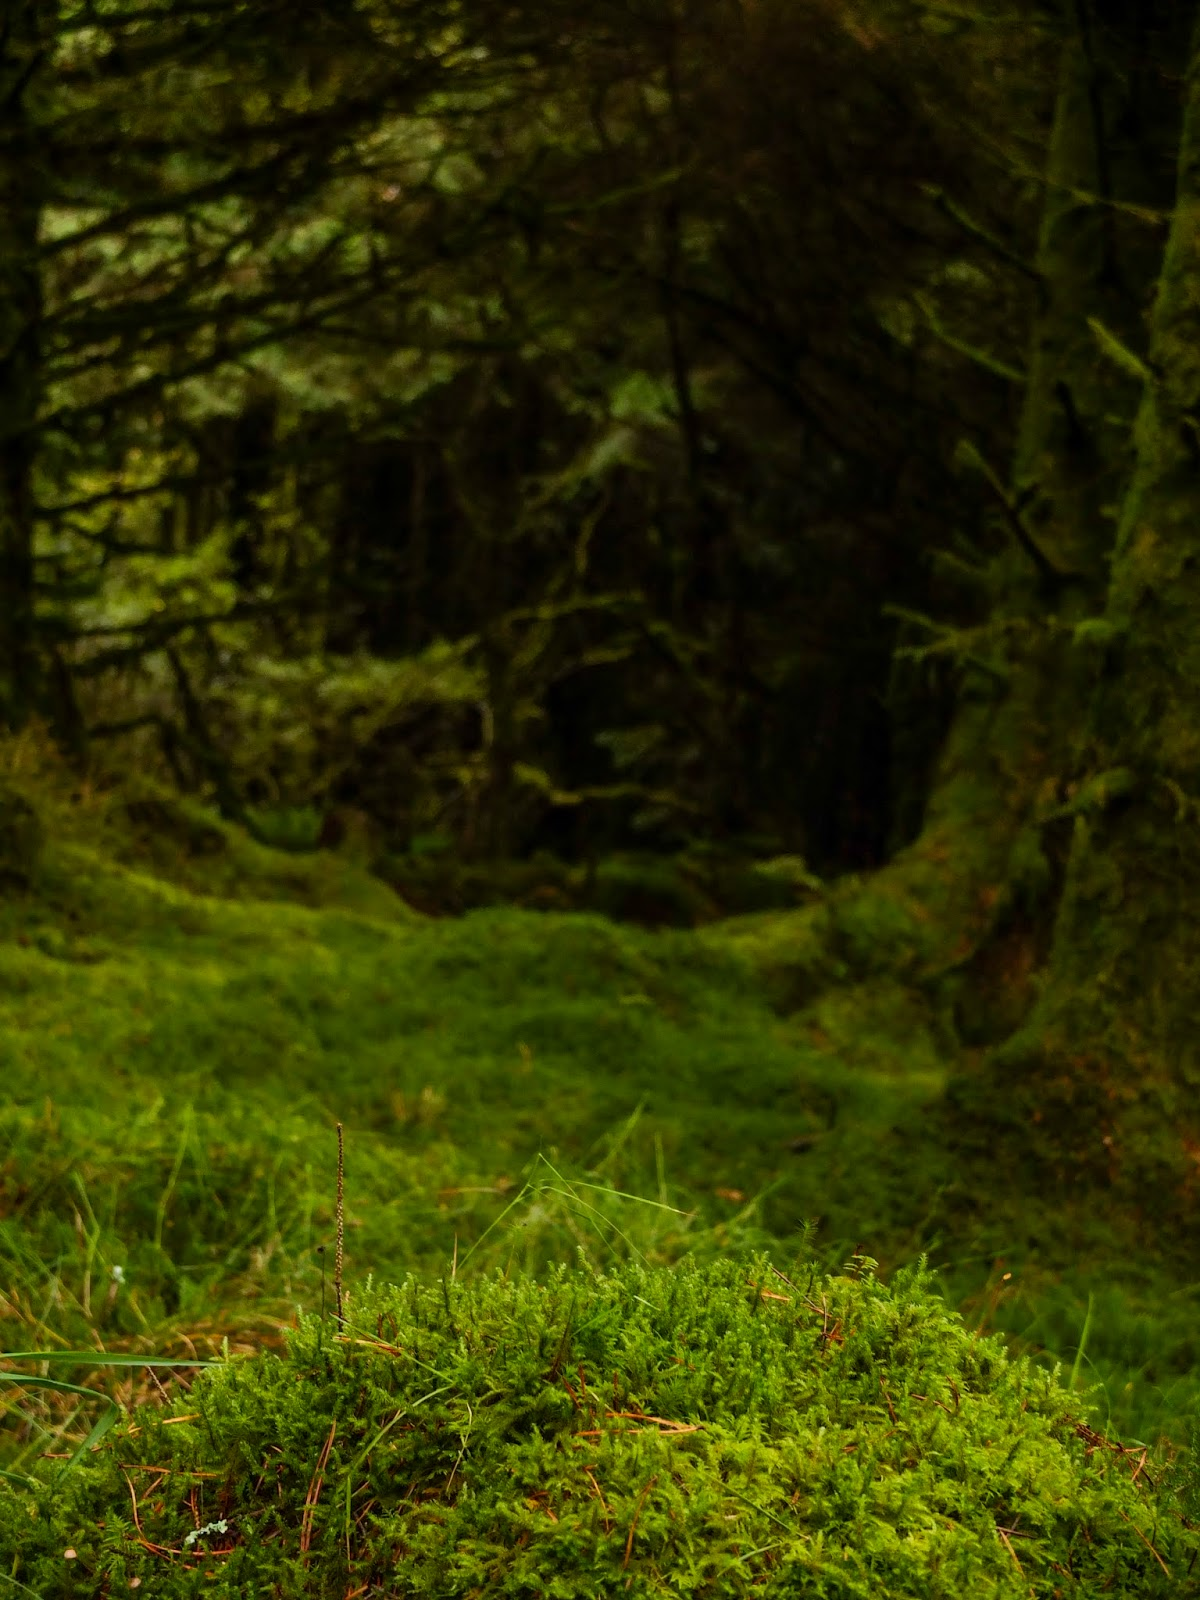 Moss covered forest floor.